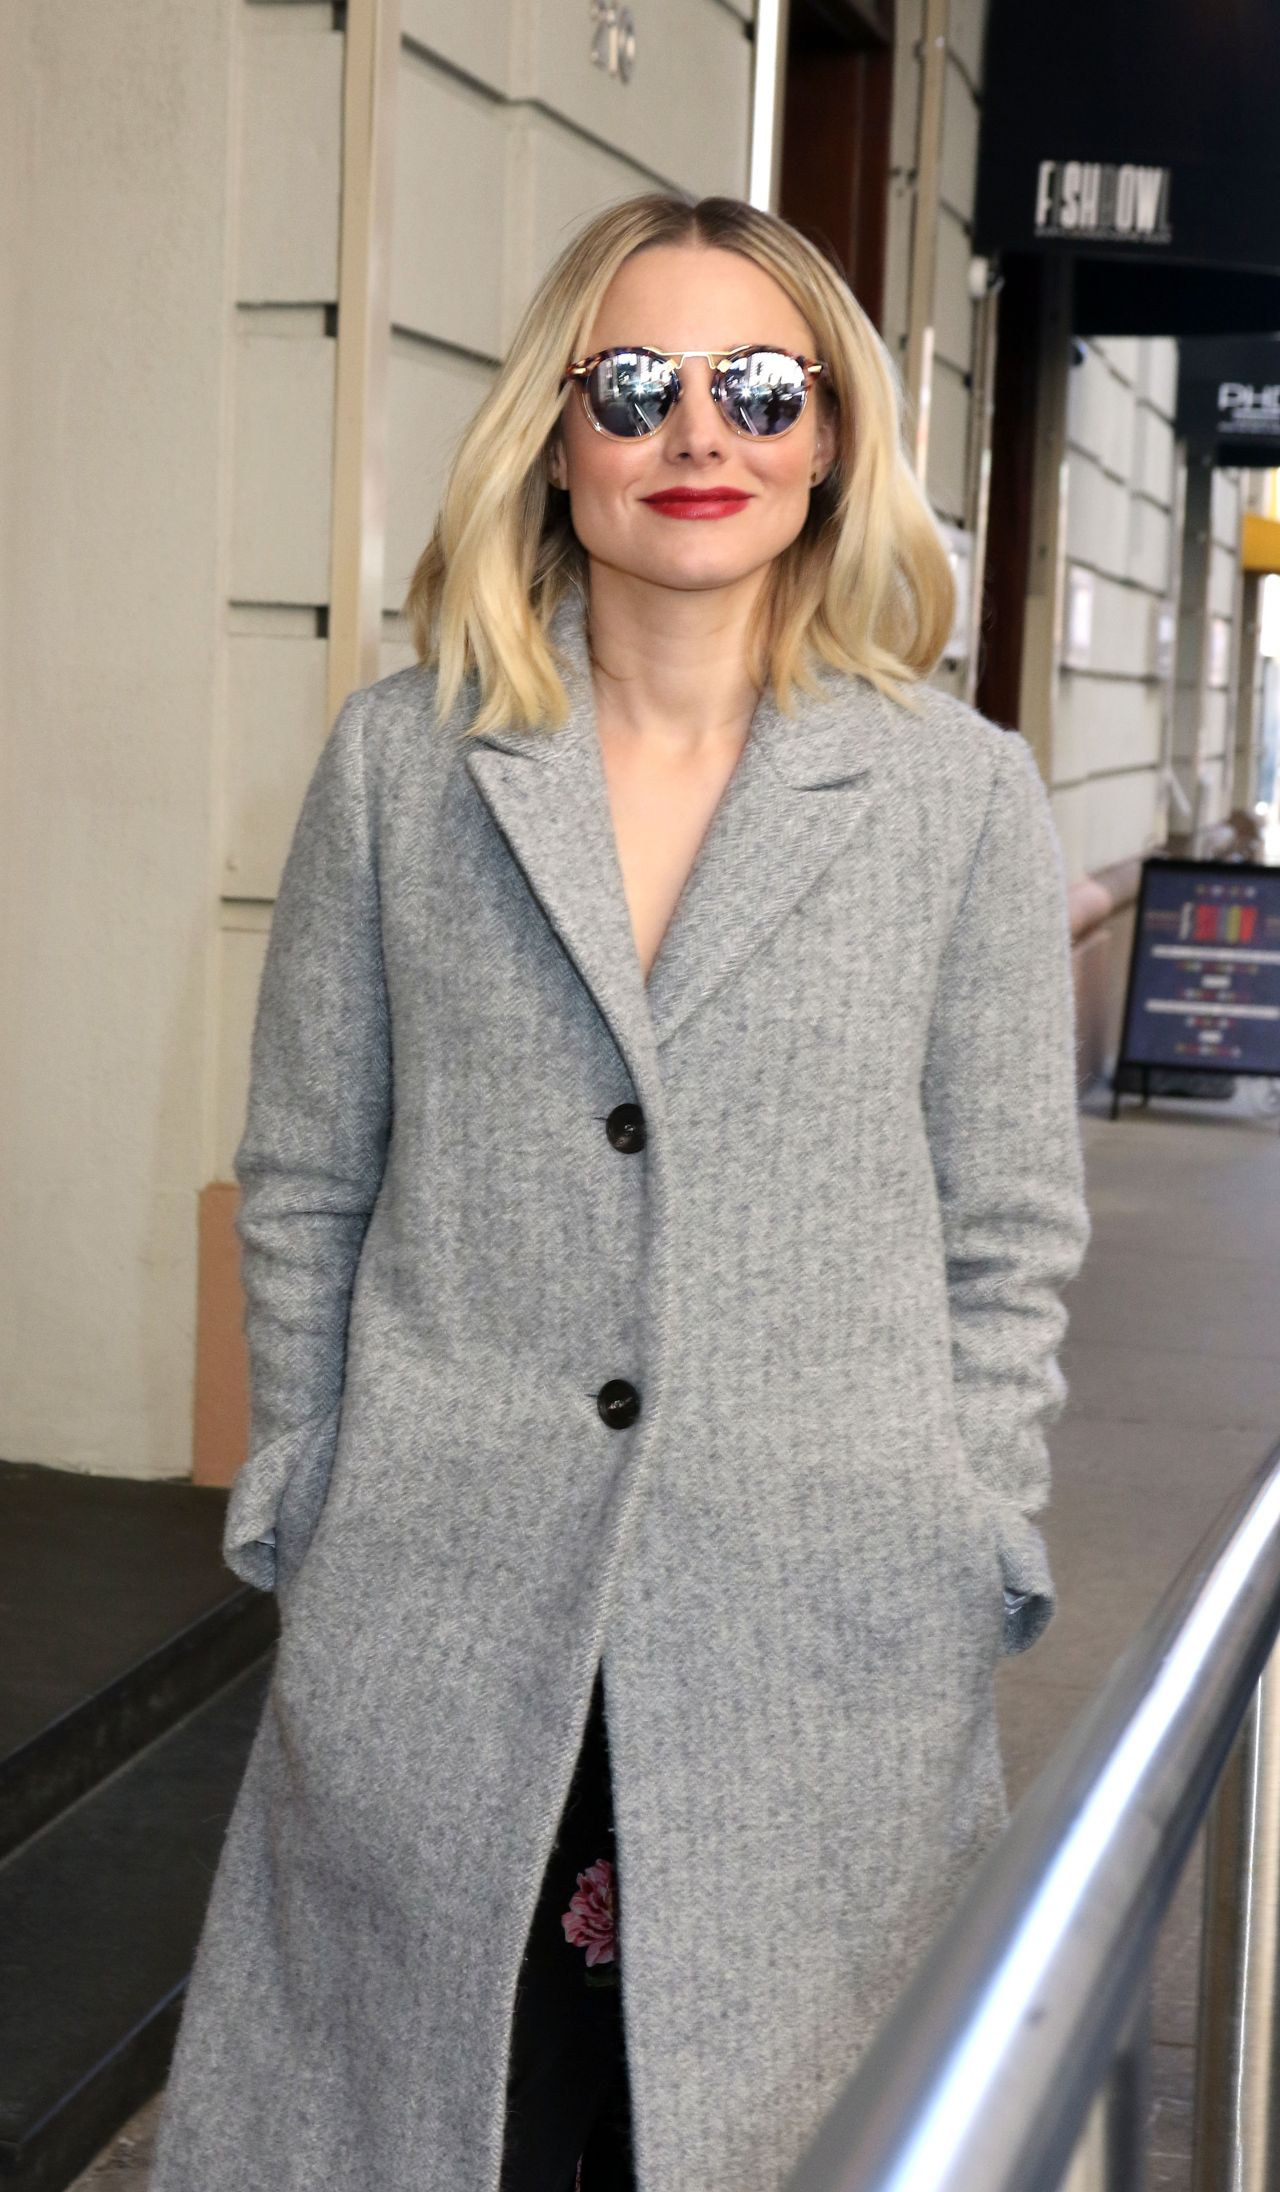 Kristen bell casual style midtown in new york - 2019 year